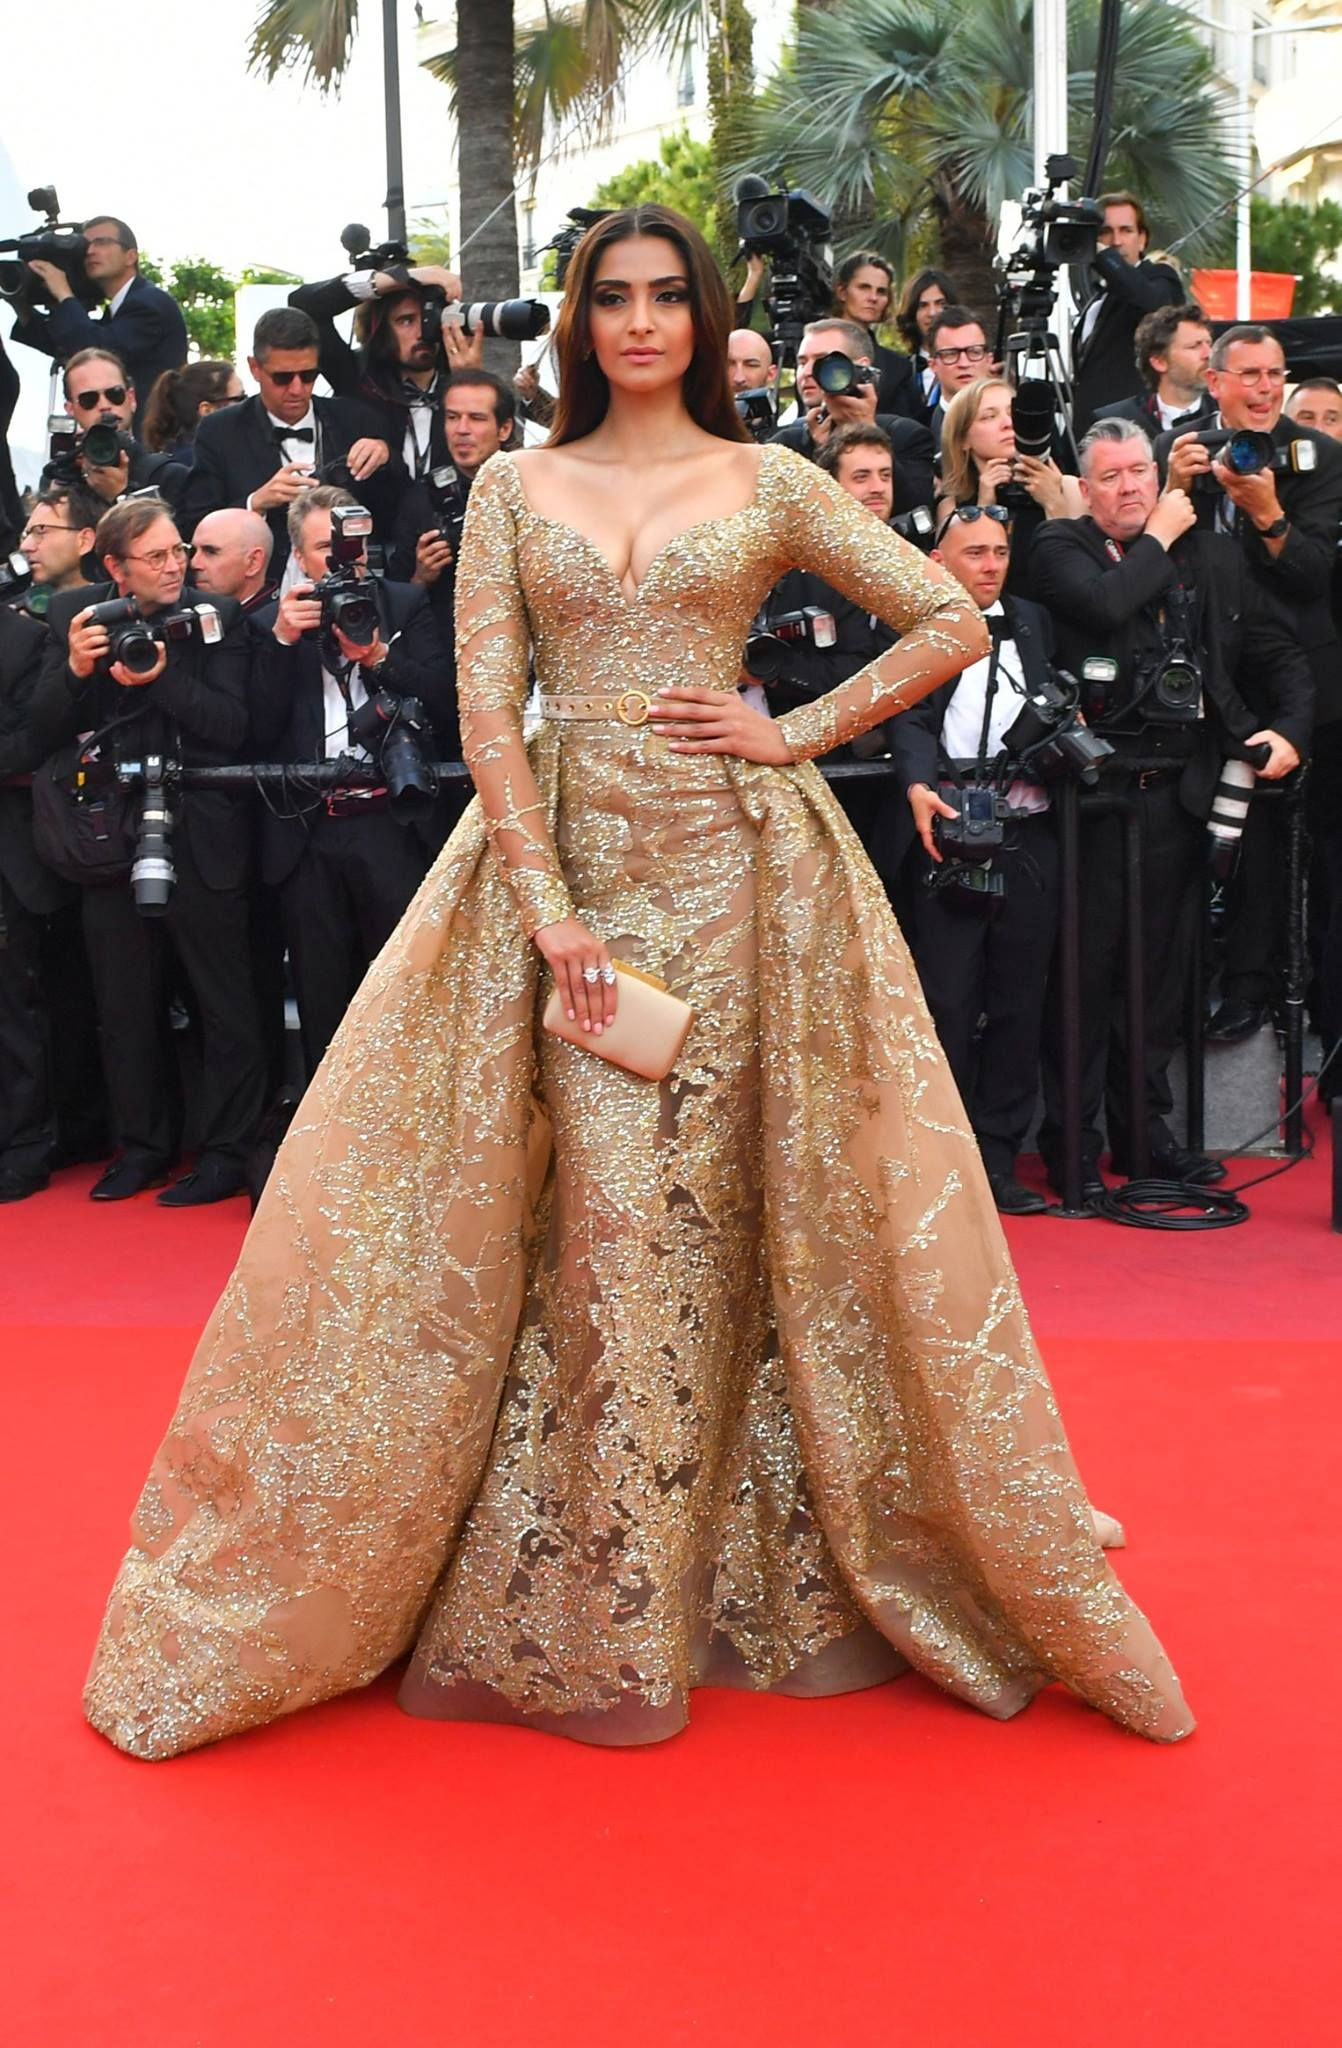 Sonam Kapoor In Elie Saab Plenty Of Show Stopping Wedding Gown Inspiration On The Red Carpet At 2017 Cannes Film Festival With Celebrities Like